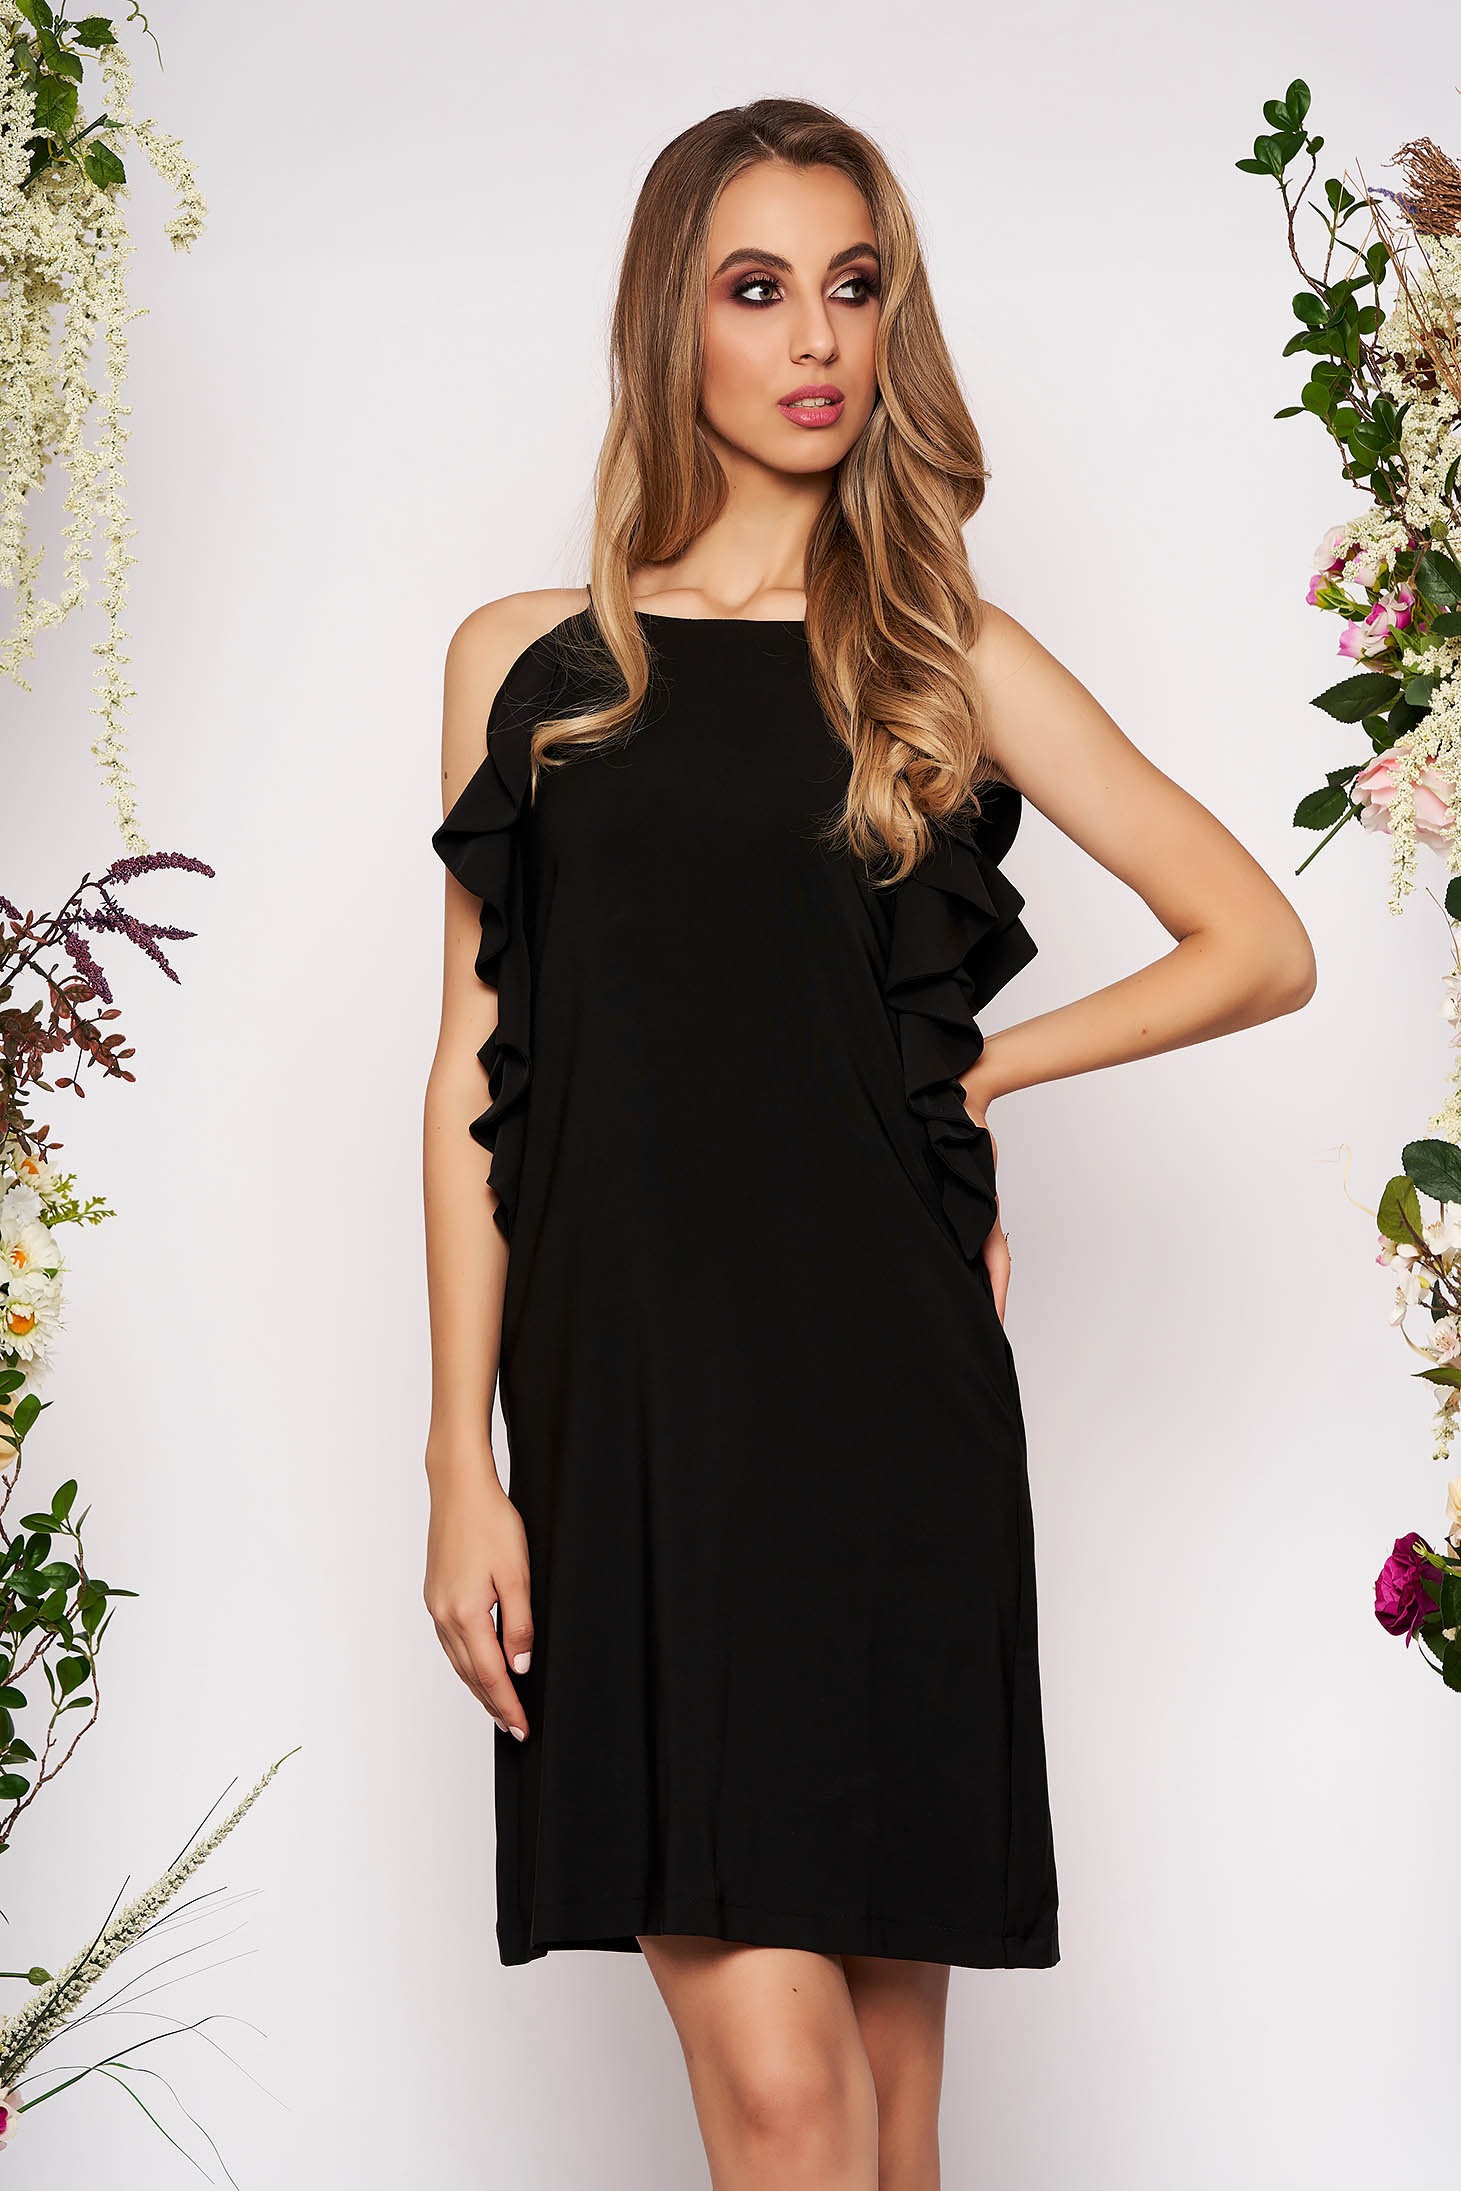 Black dress daily short cut a-line with pockets with ruffle details with rounded cleavage